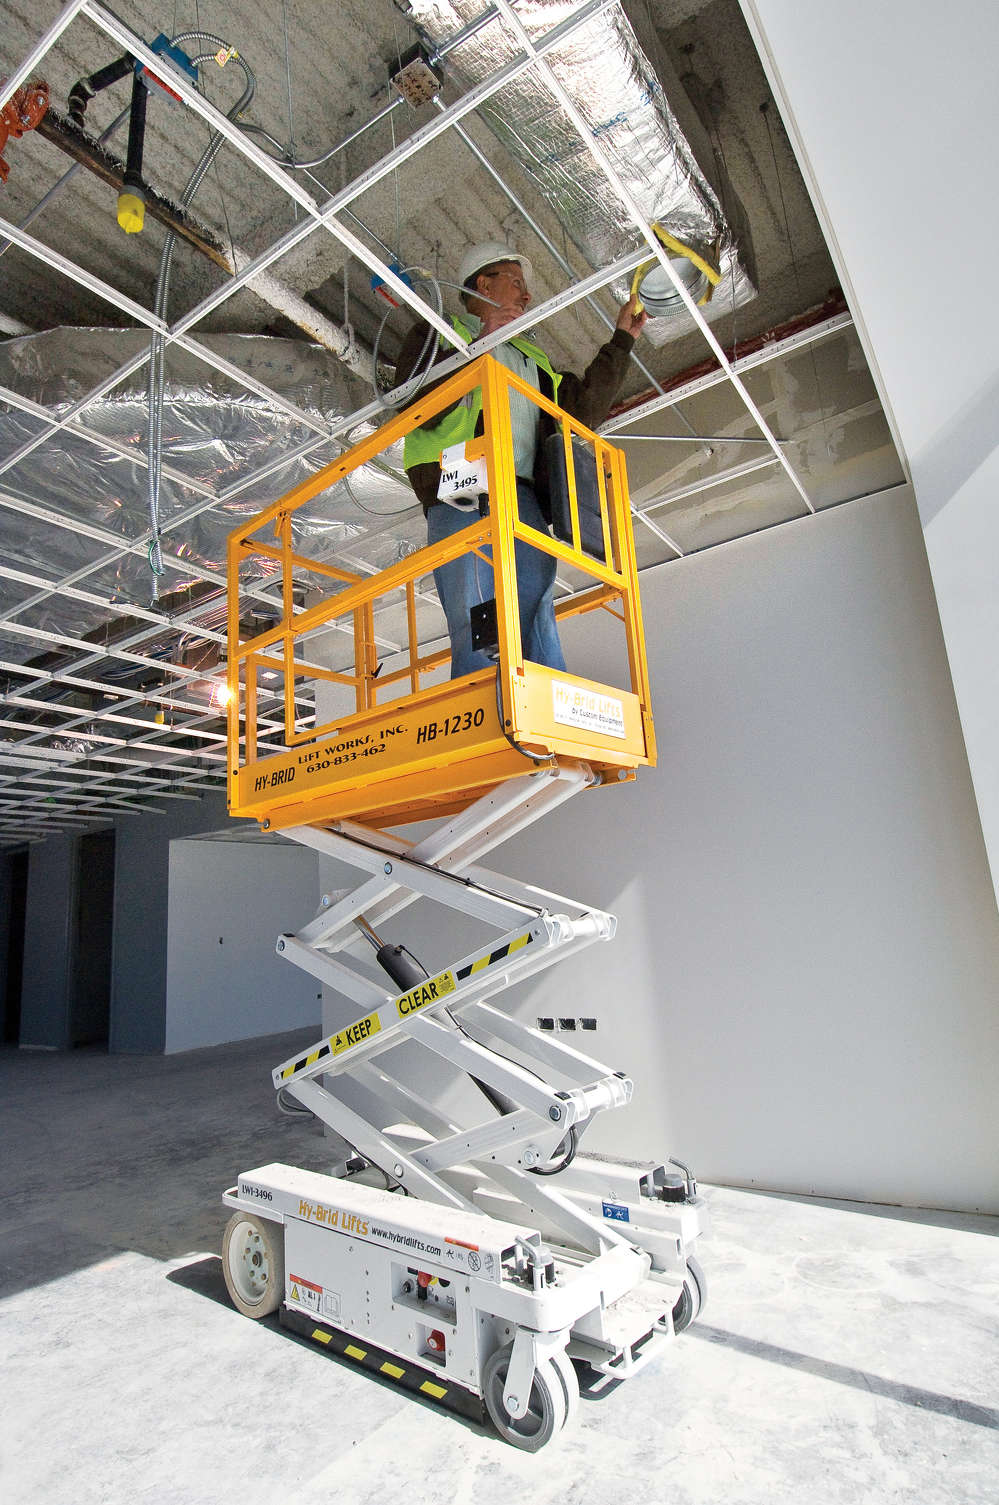 Platform stability is key to enhancing worker safety for work-at-height projects. Some lifts have especially sturdy platforms due their robust scissor stacks and oversized pins.